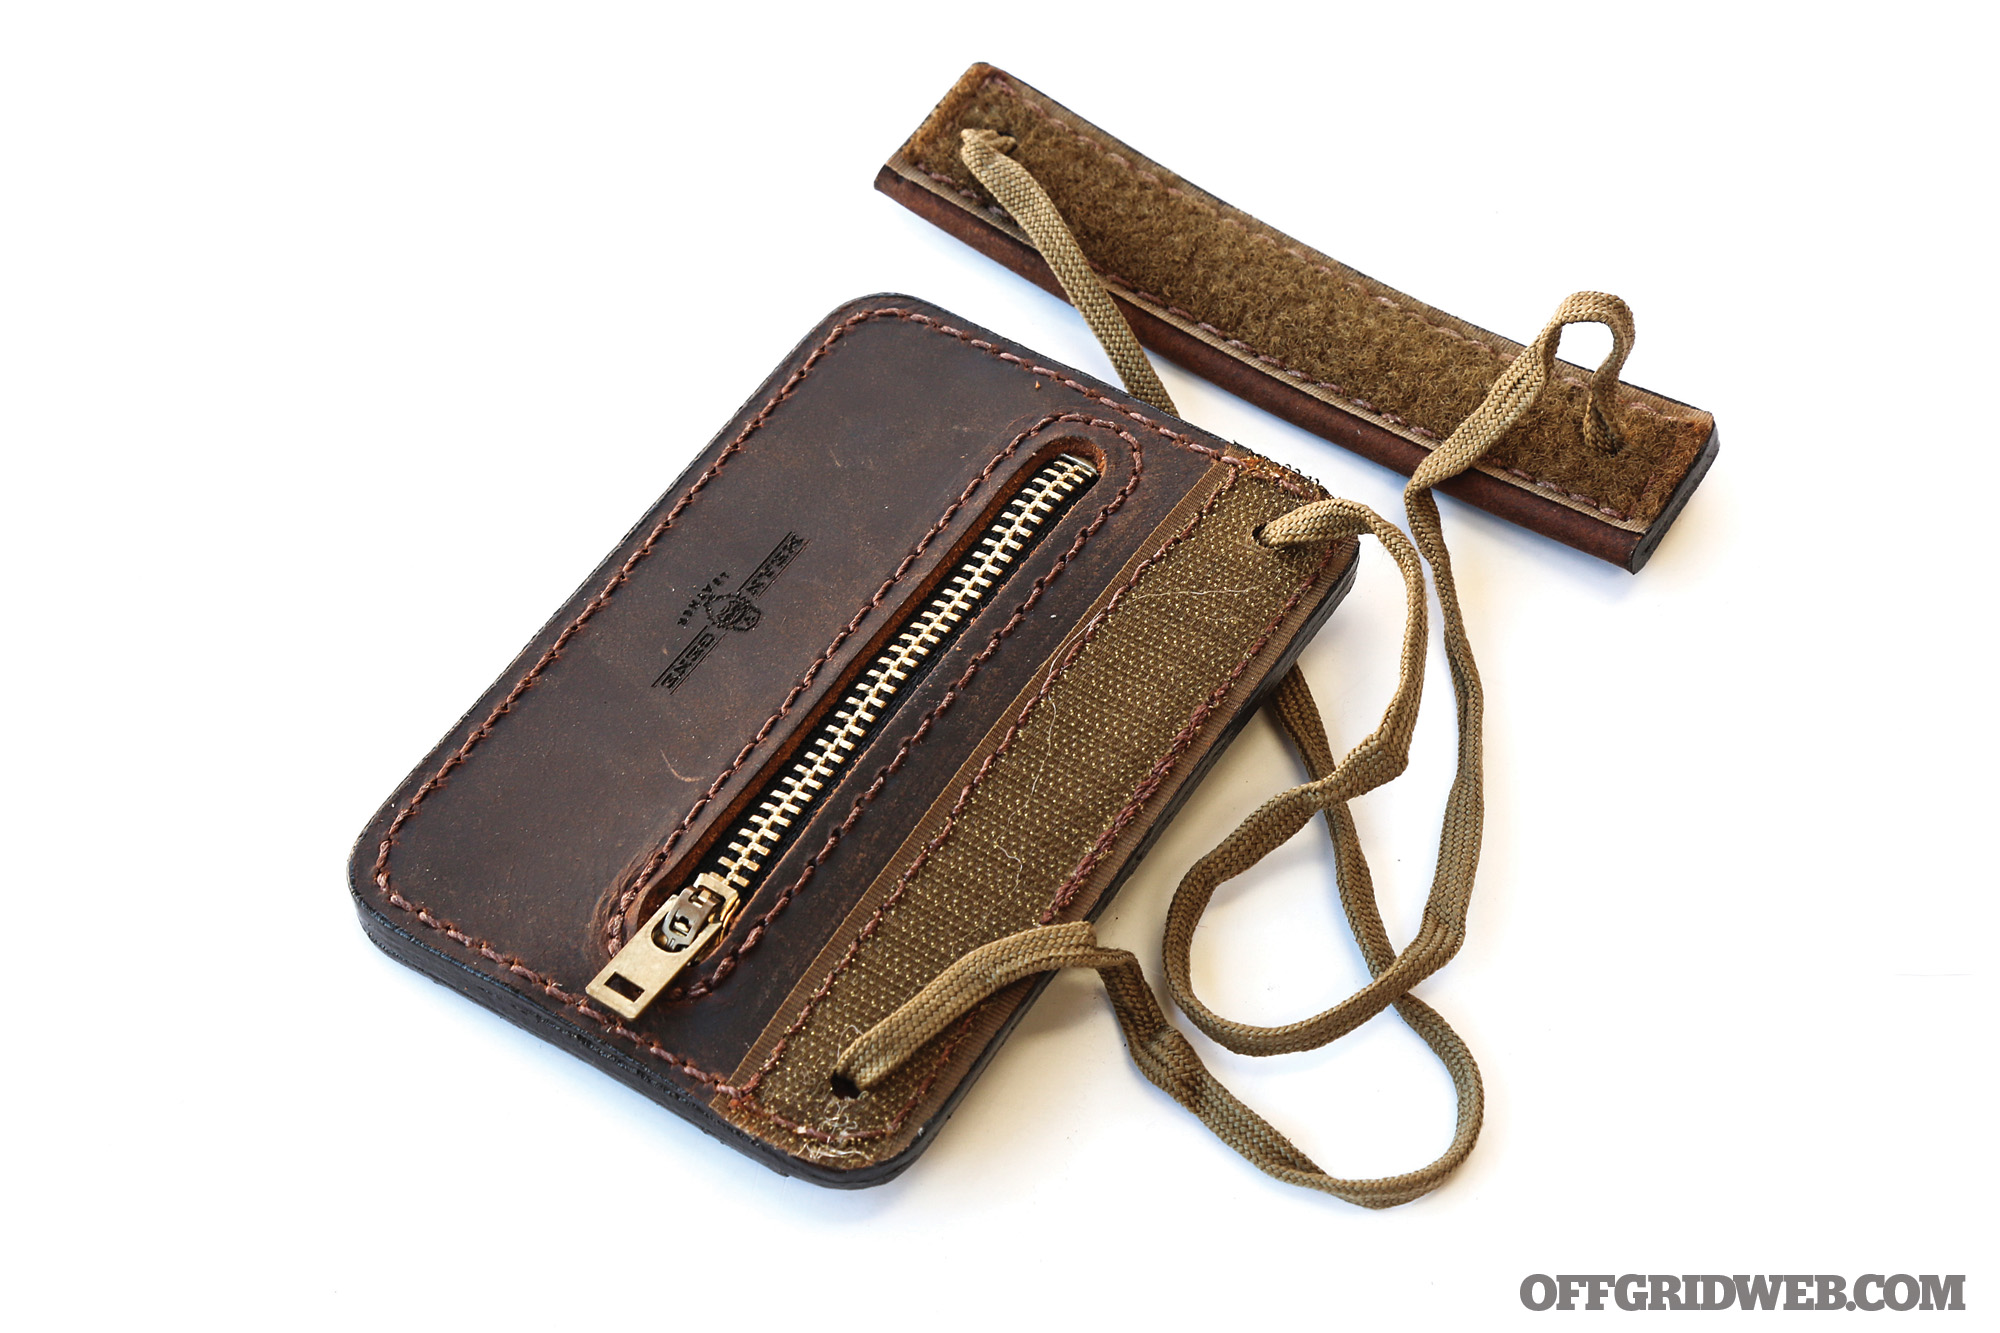 OFGP-190200-POCKET-MEAN-REVIEW-05.JPG